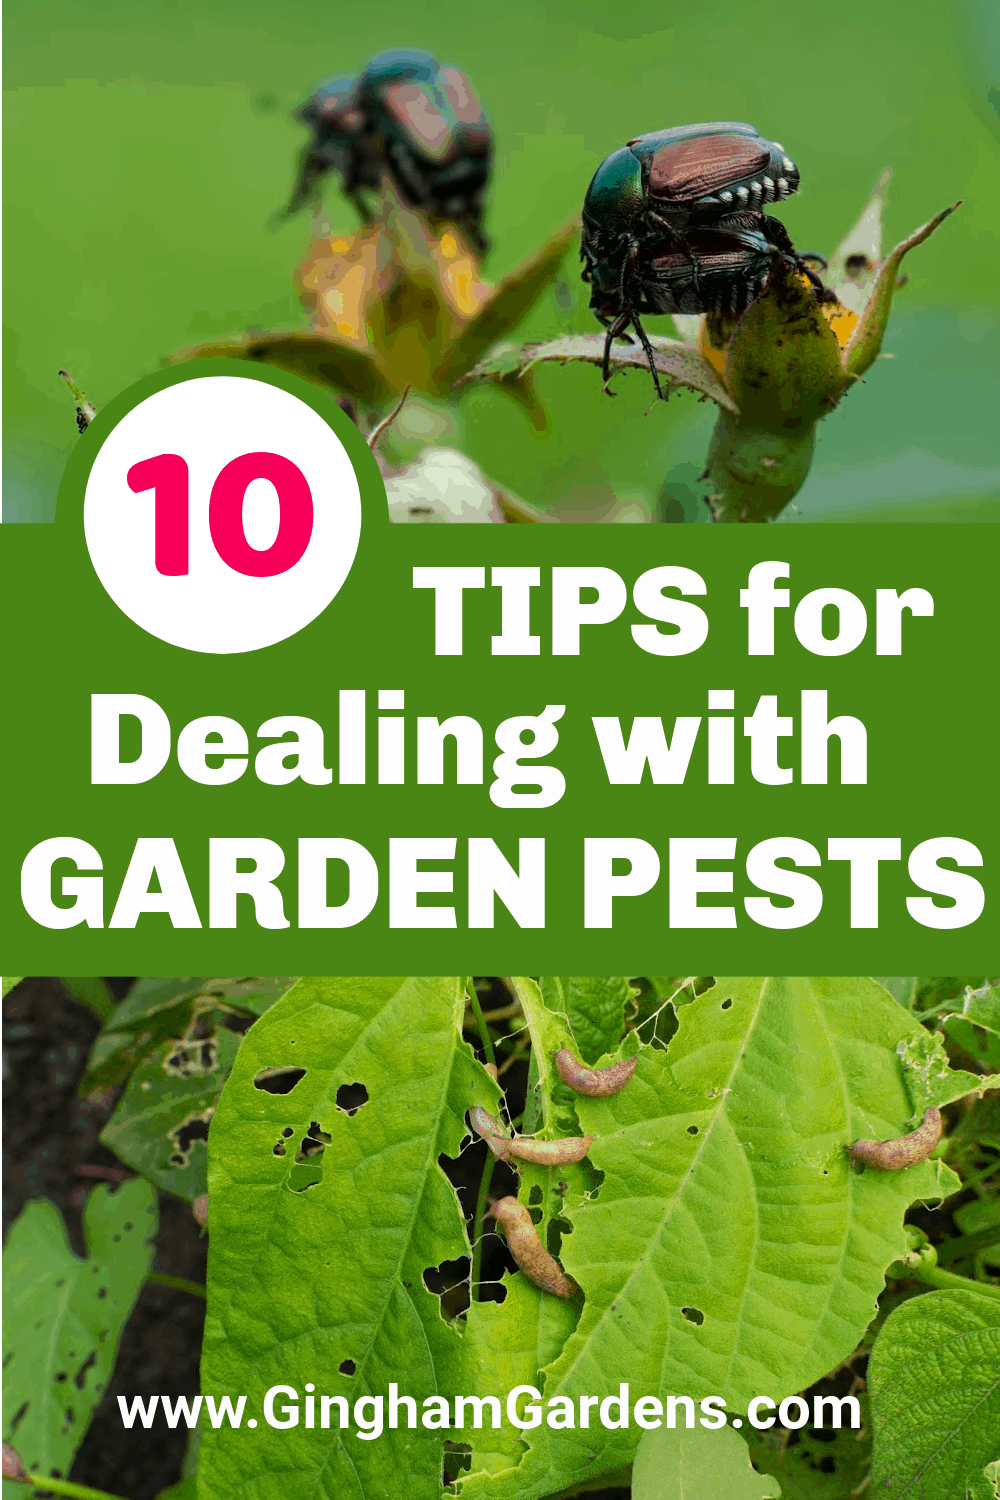 Images of bugs on plants with text overlay - 10 Tips for Dealing with Garden Pests